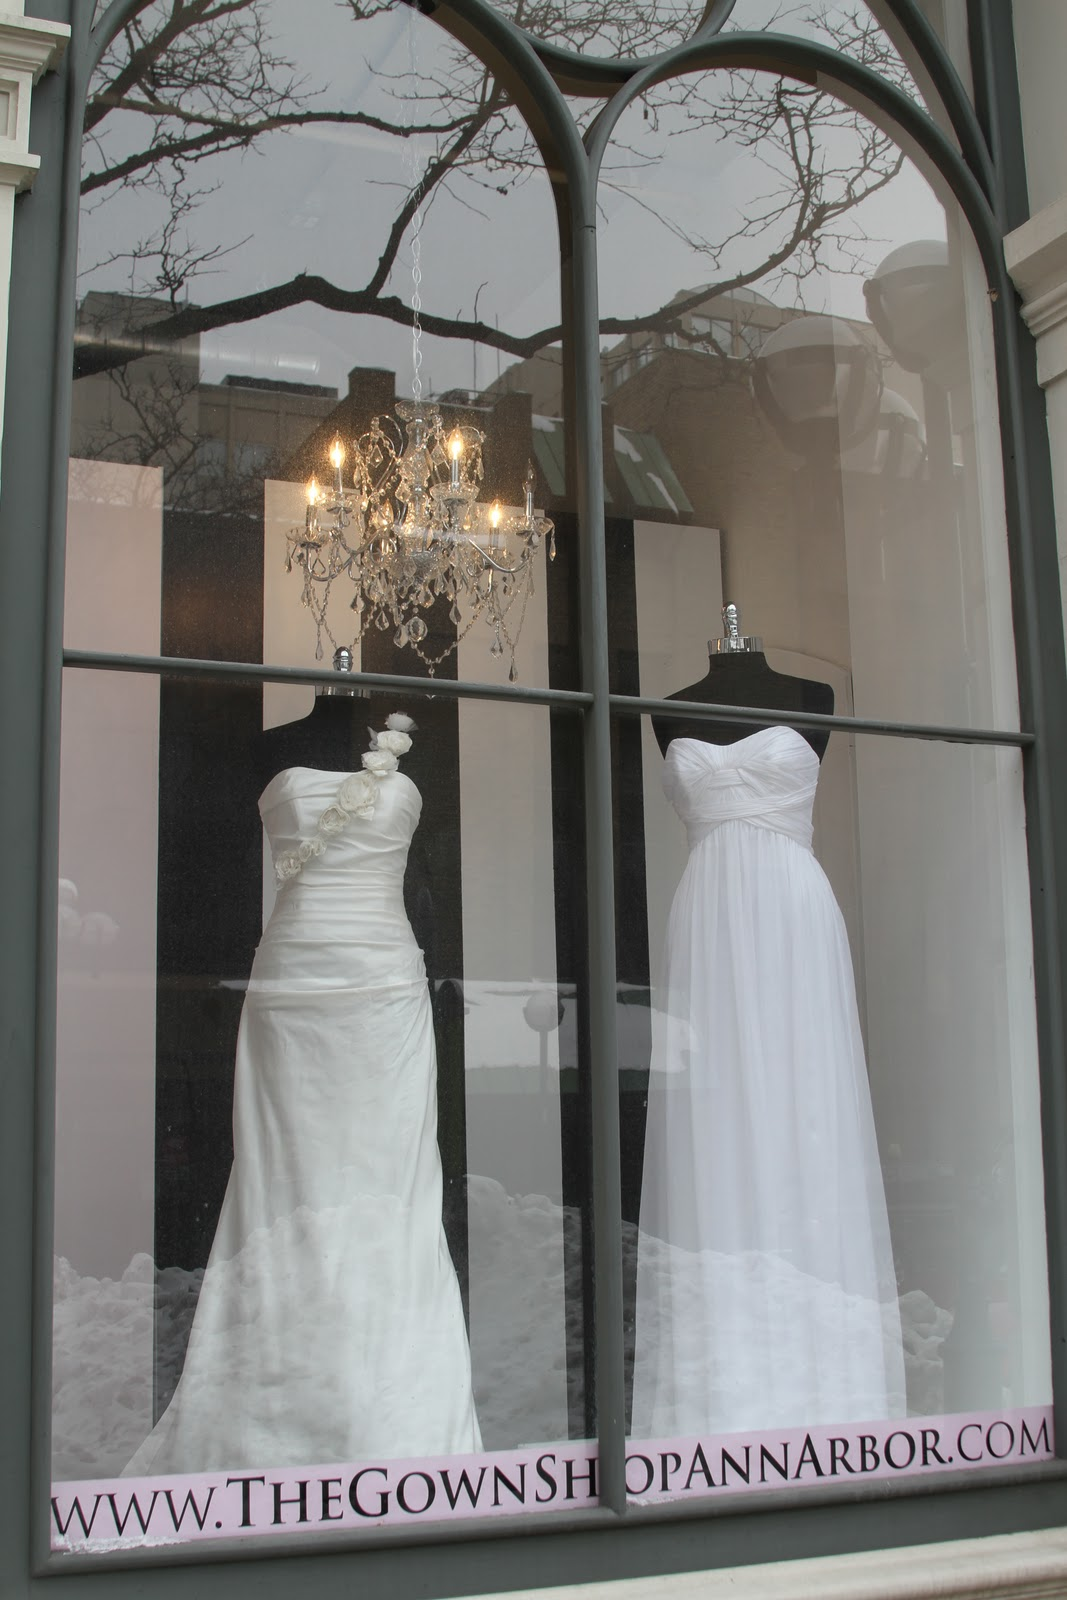 Crowning celebrations crowning cunning the gown shop for Ann arbor wedding dress